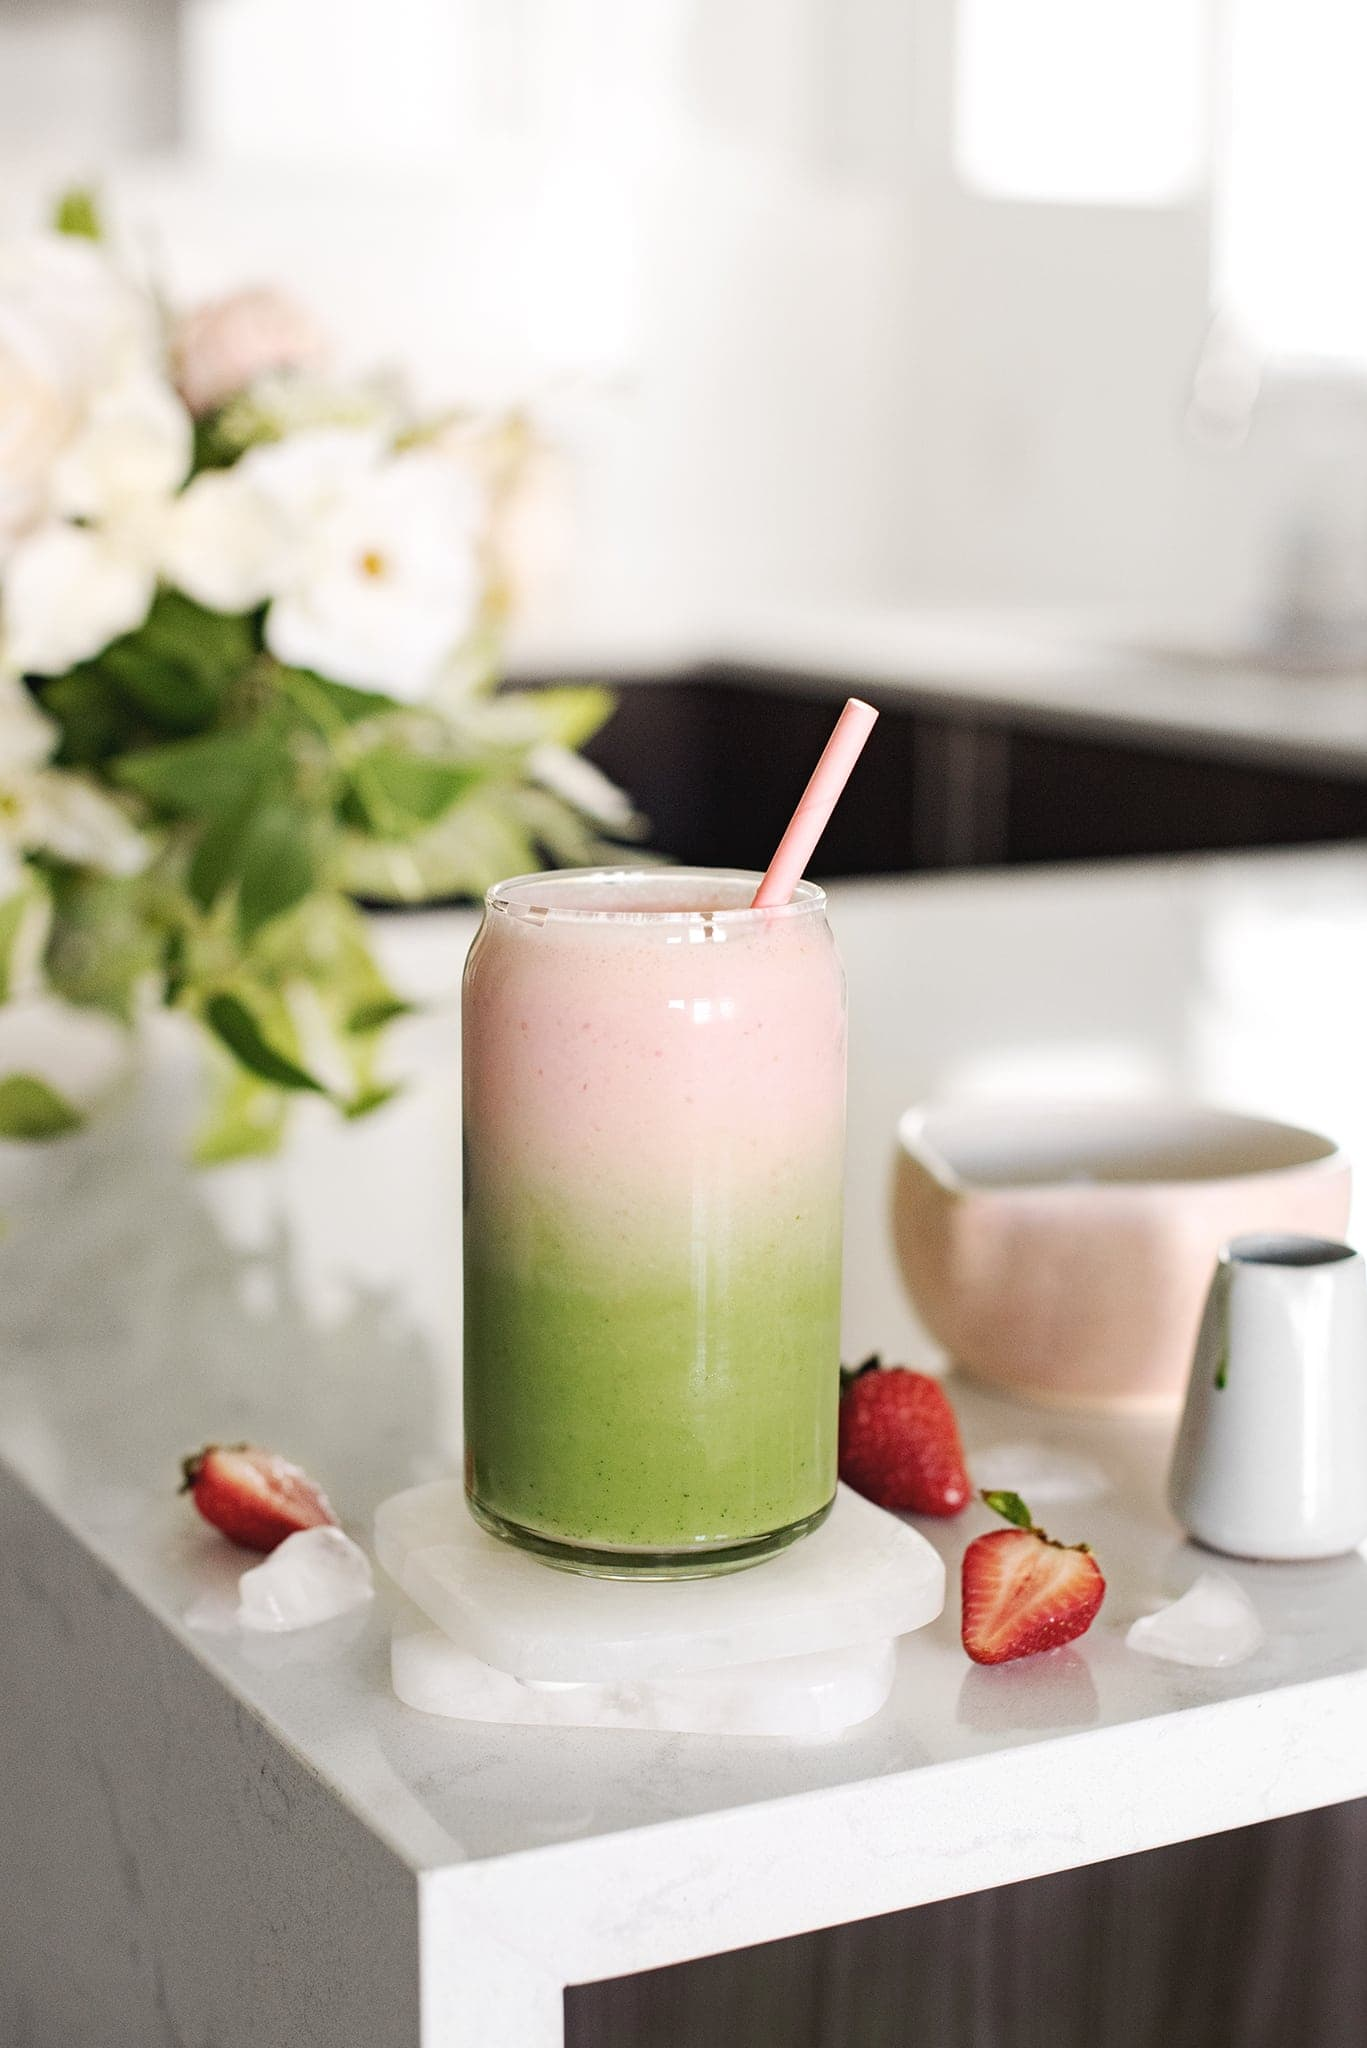 Strawberry matcha latte with green and pink layers in a glass